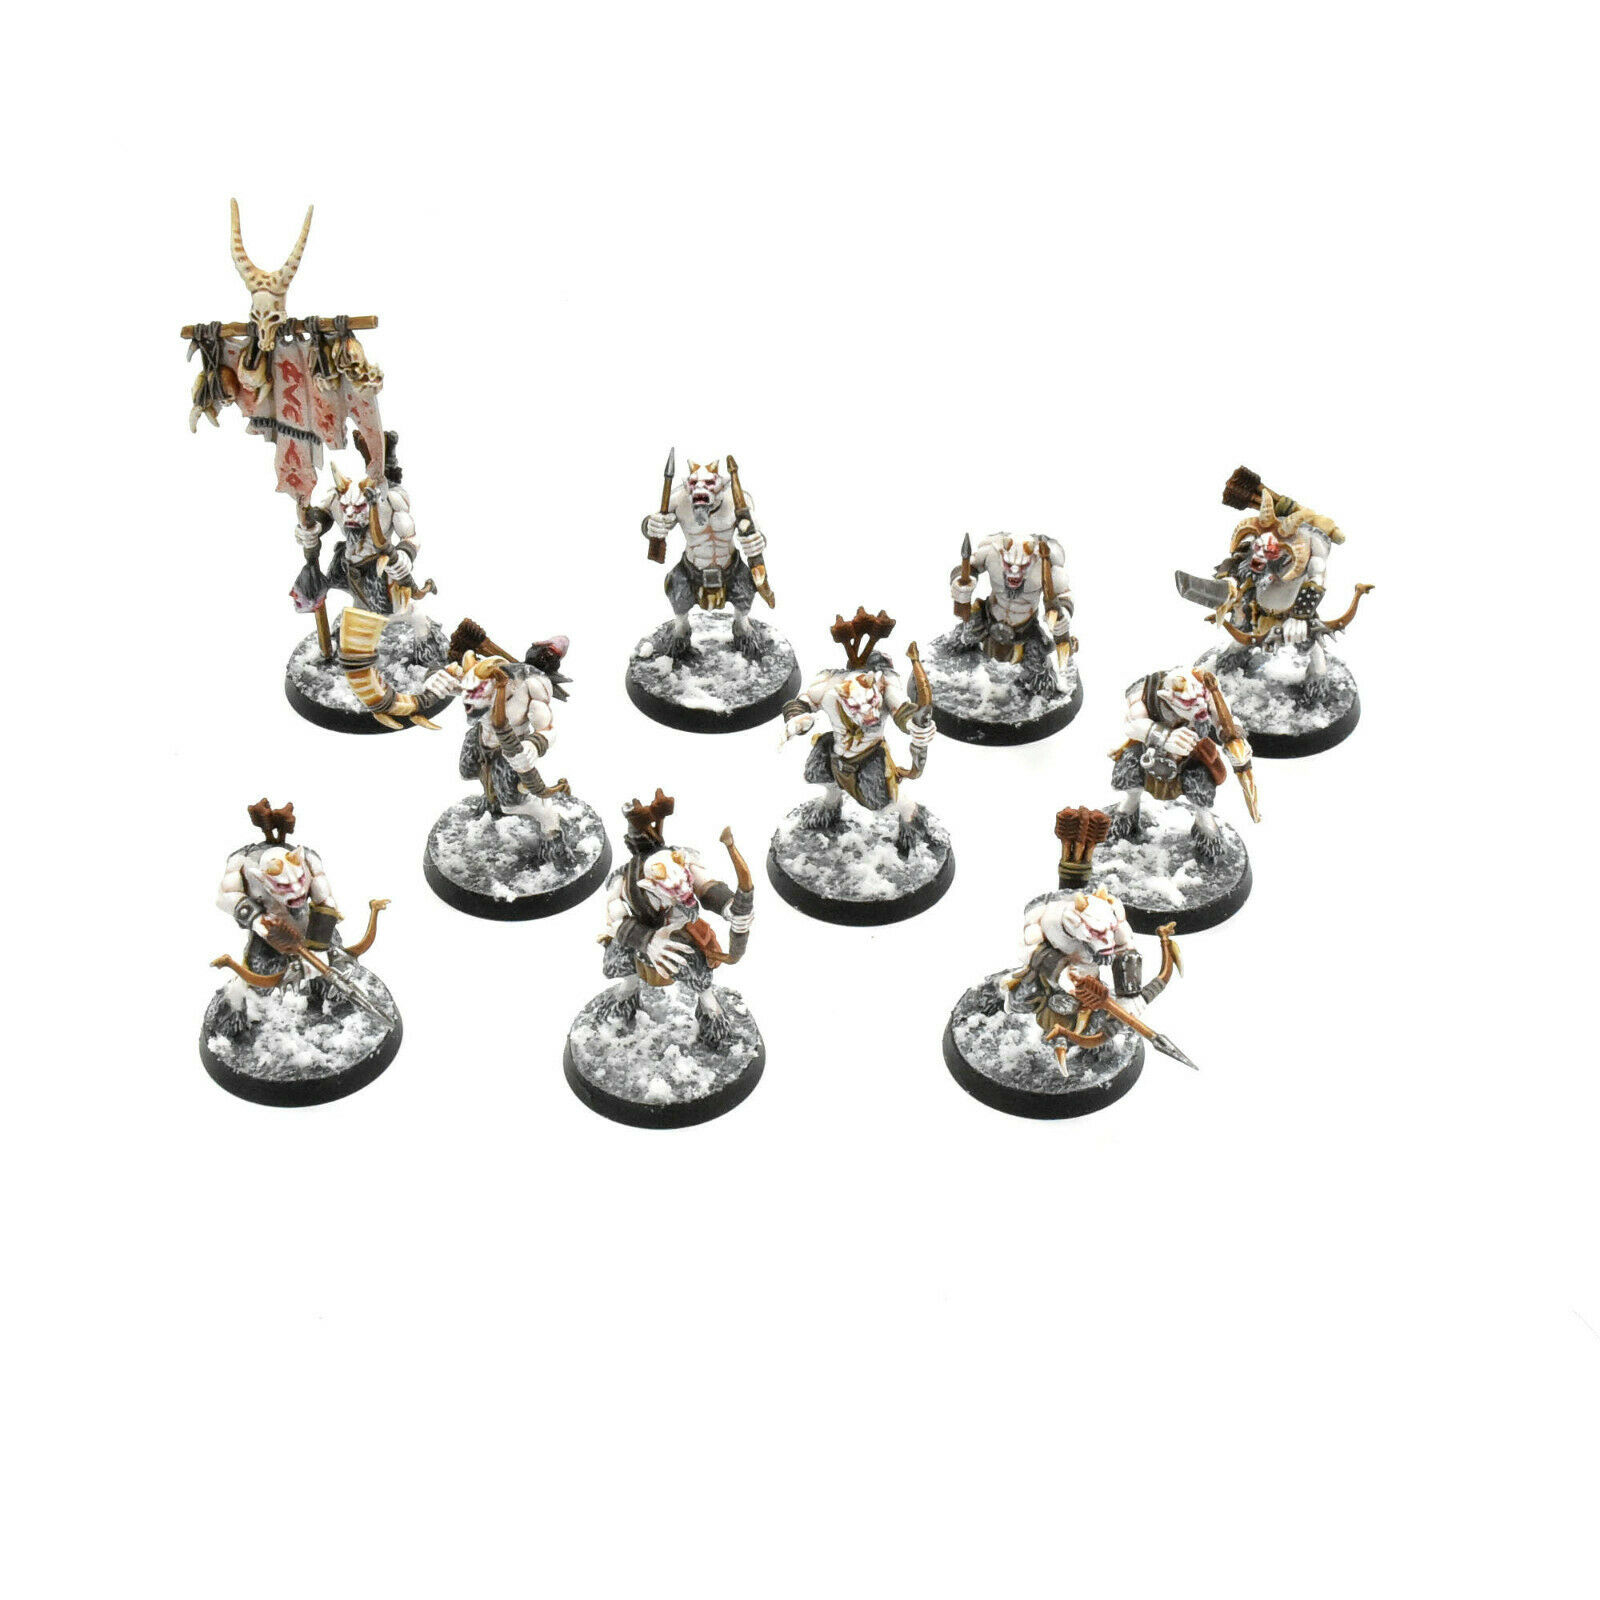 BEASTS OF CHAOS 10 ungors with bow PRO PAINTED Warhammer  Sigmar BeastHommes  dégagement jusqu'à 70%